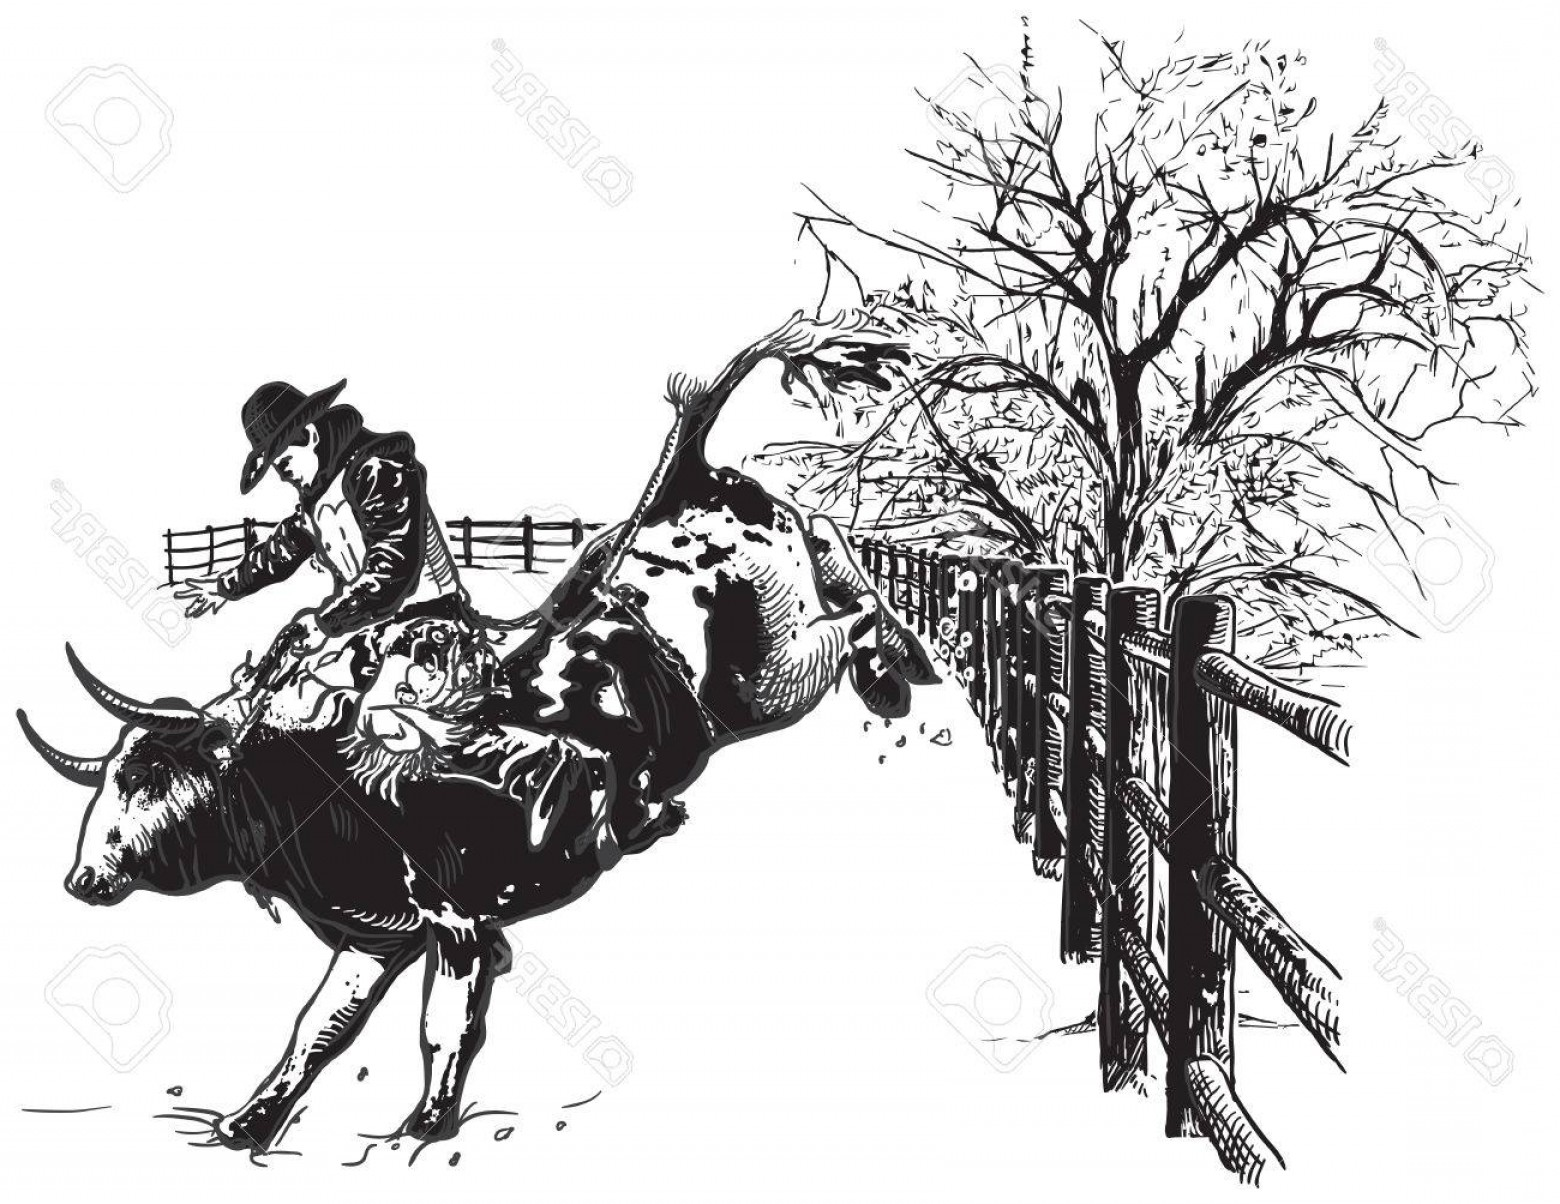 Black Horse Vector Scene: Photostock Vector An Hand Drawn Freehand Vector Rodeo Scene From The American Culture